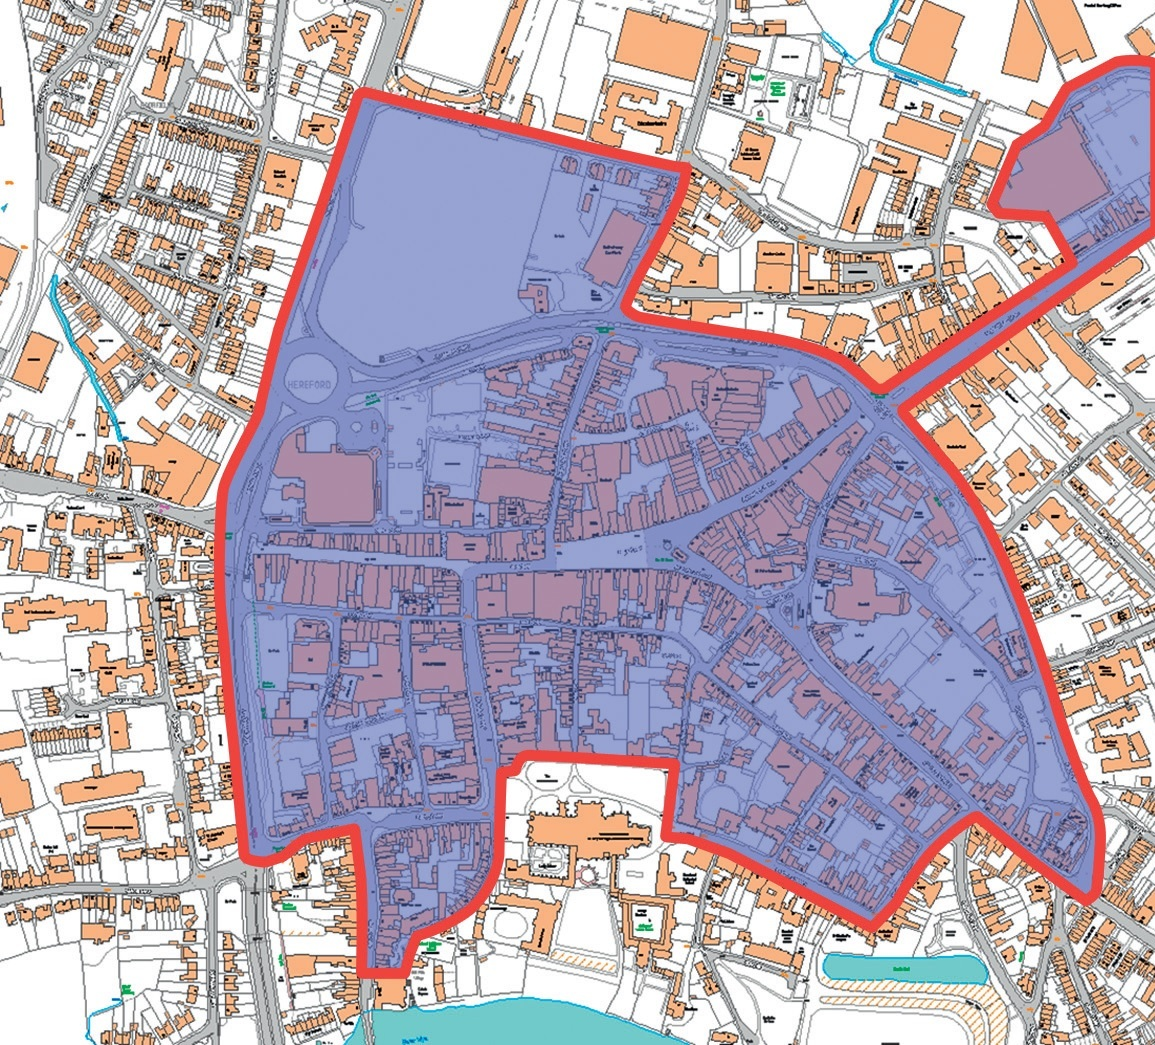 The exact boundaries of the BID area in Hereford are being refined as a part of the consultation process. All streets in the shaded area of the map are being considered.